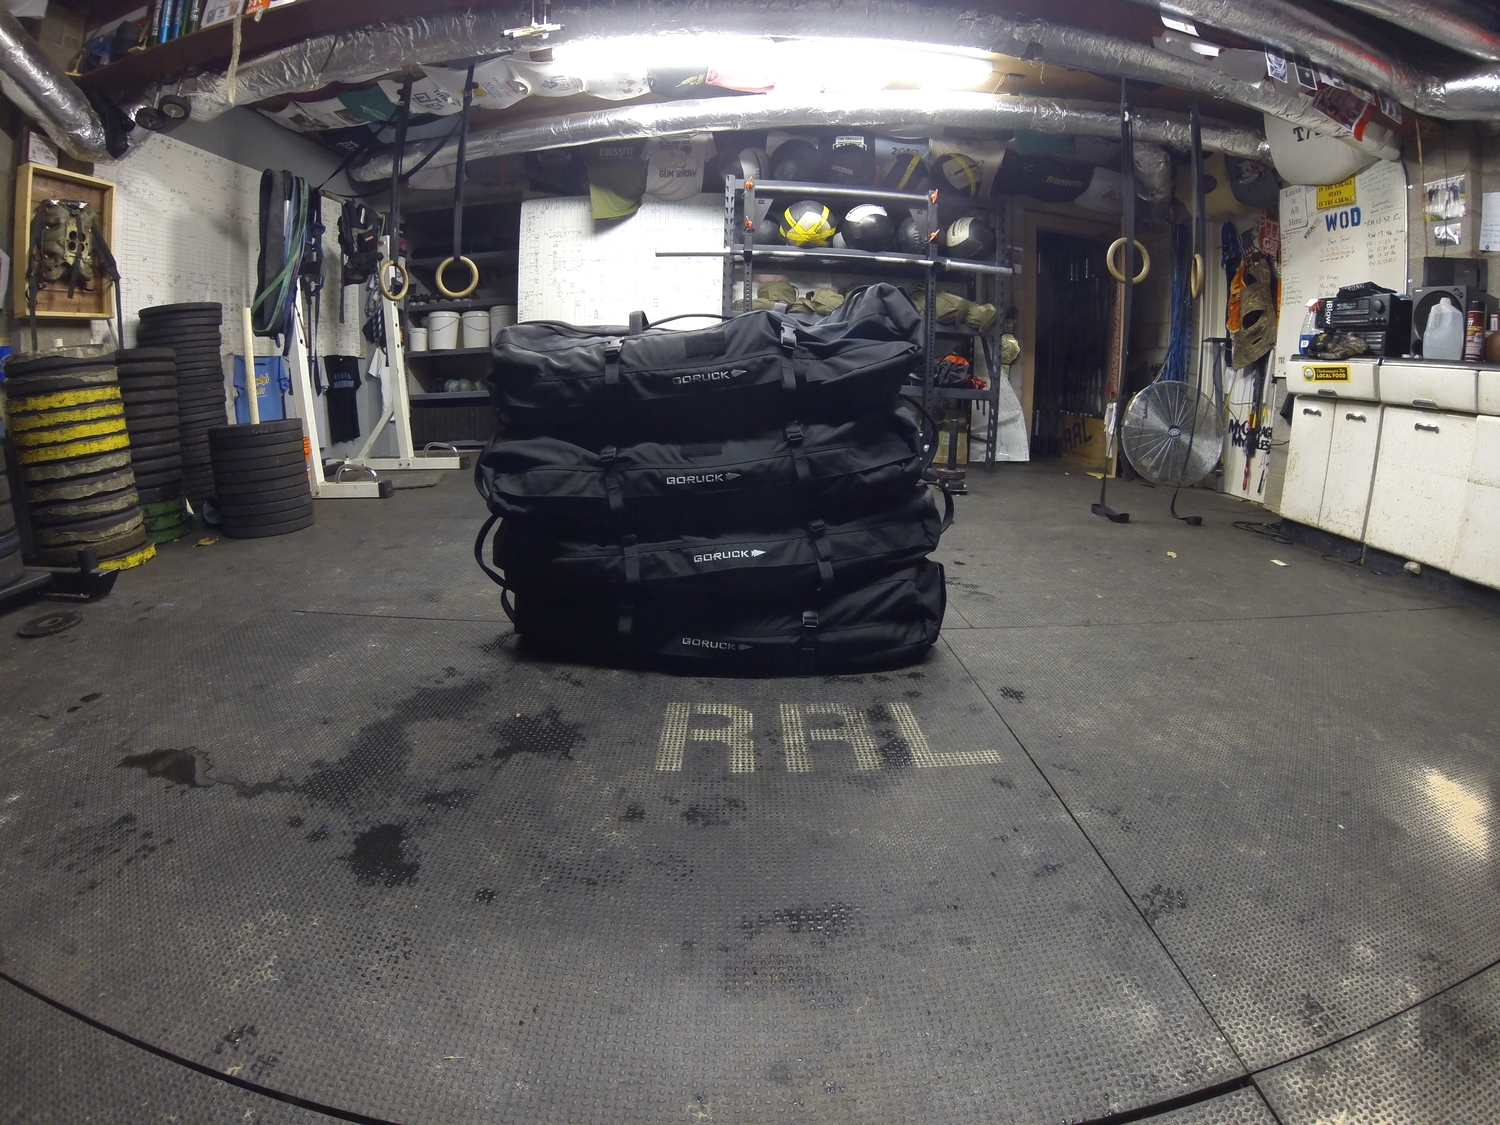 """120 lb Goruck Sandbags ready to crush our souls and make us cry """"Uncle"""""""